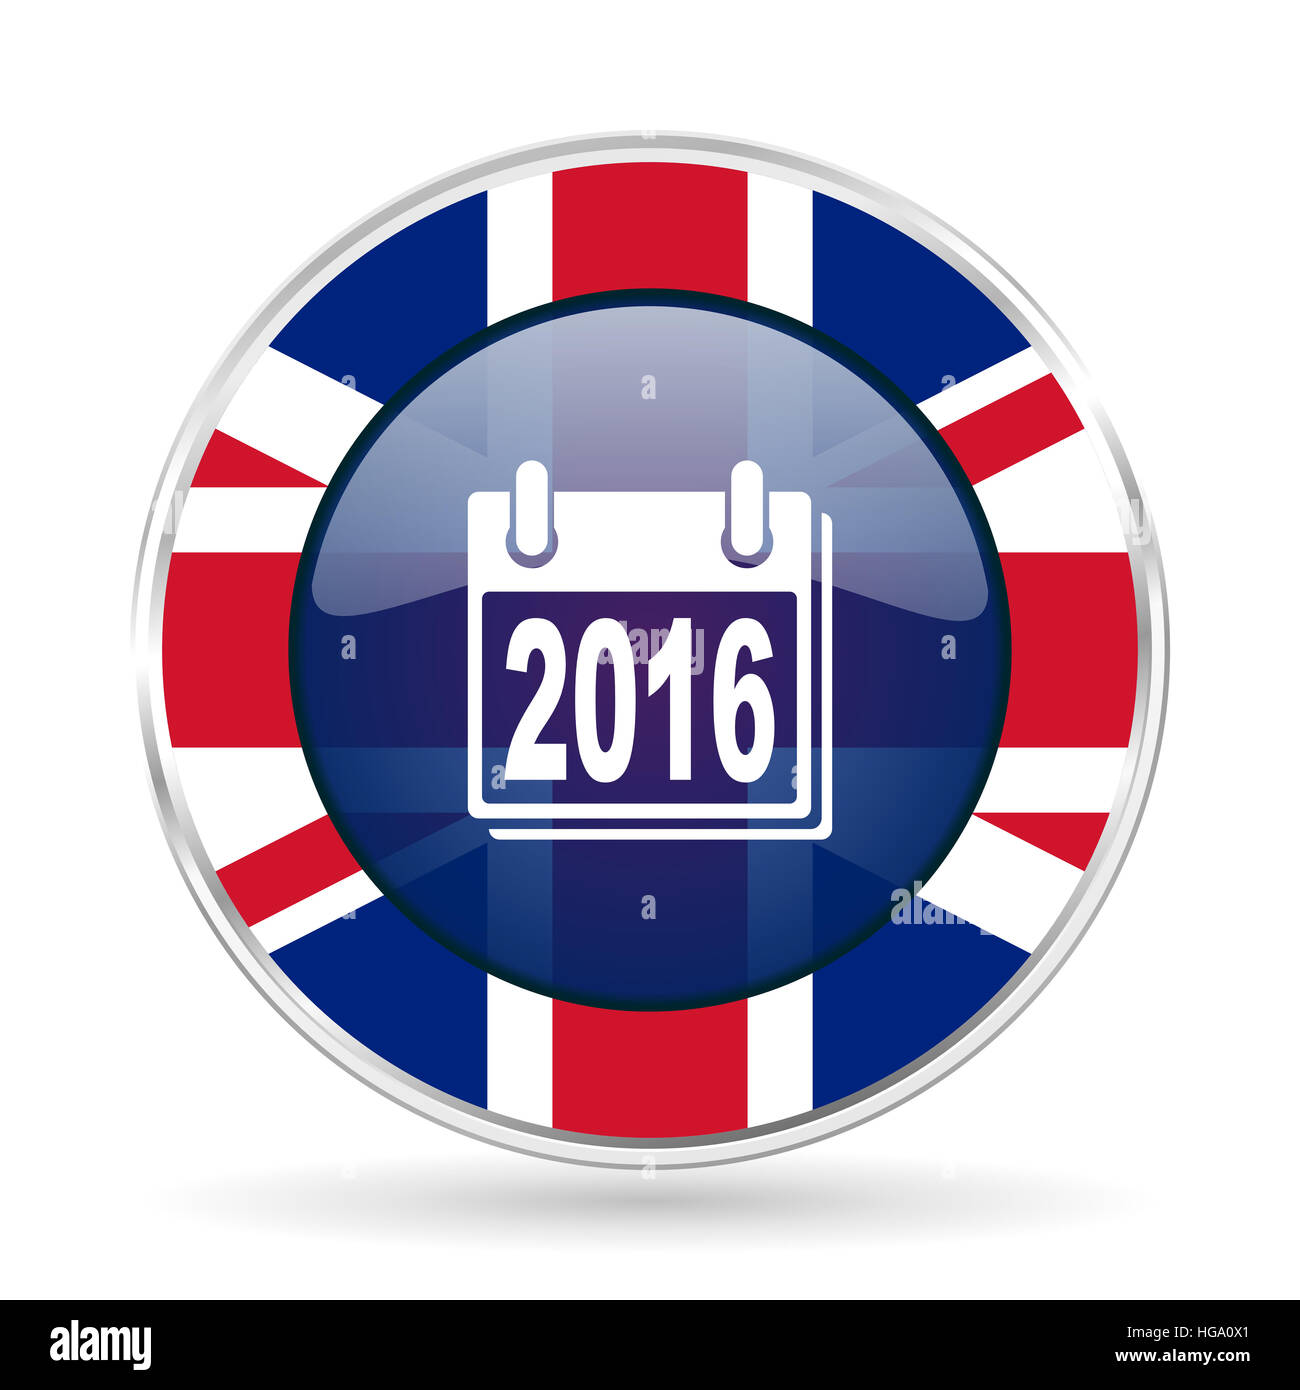 new year 2016 british design icon - round silver metallic border button with Great Britain flag - Stock Image